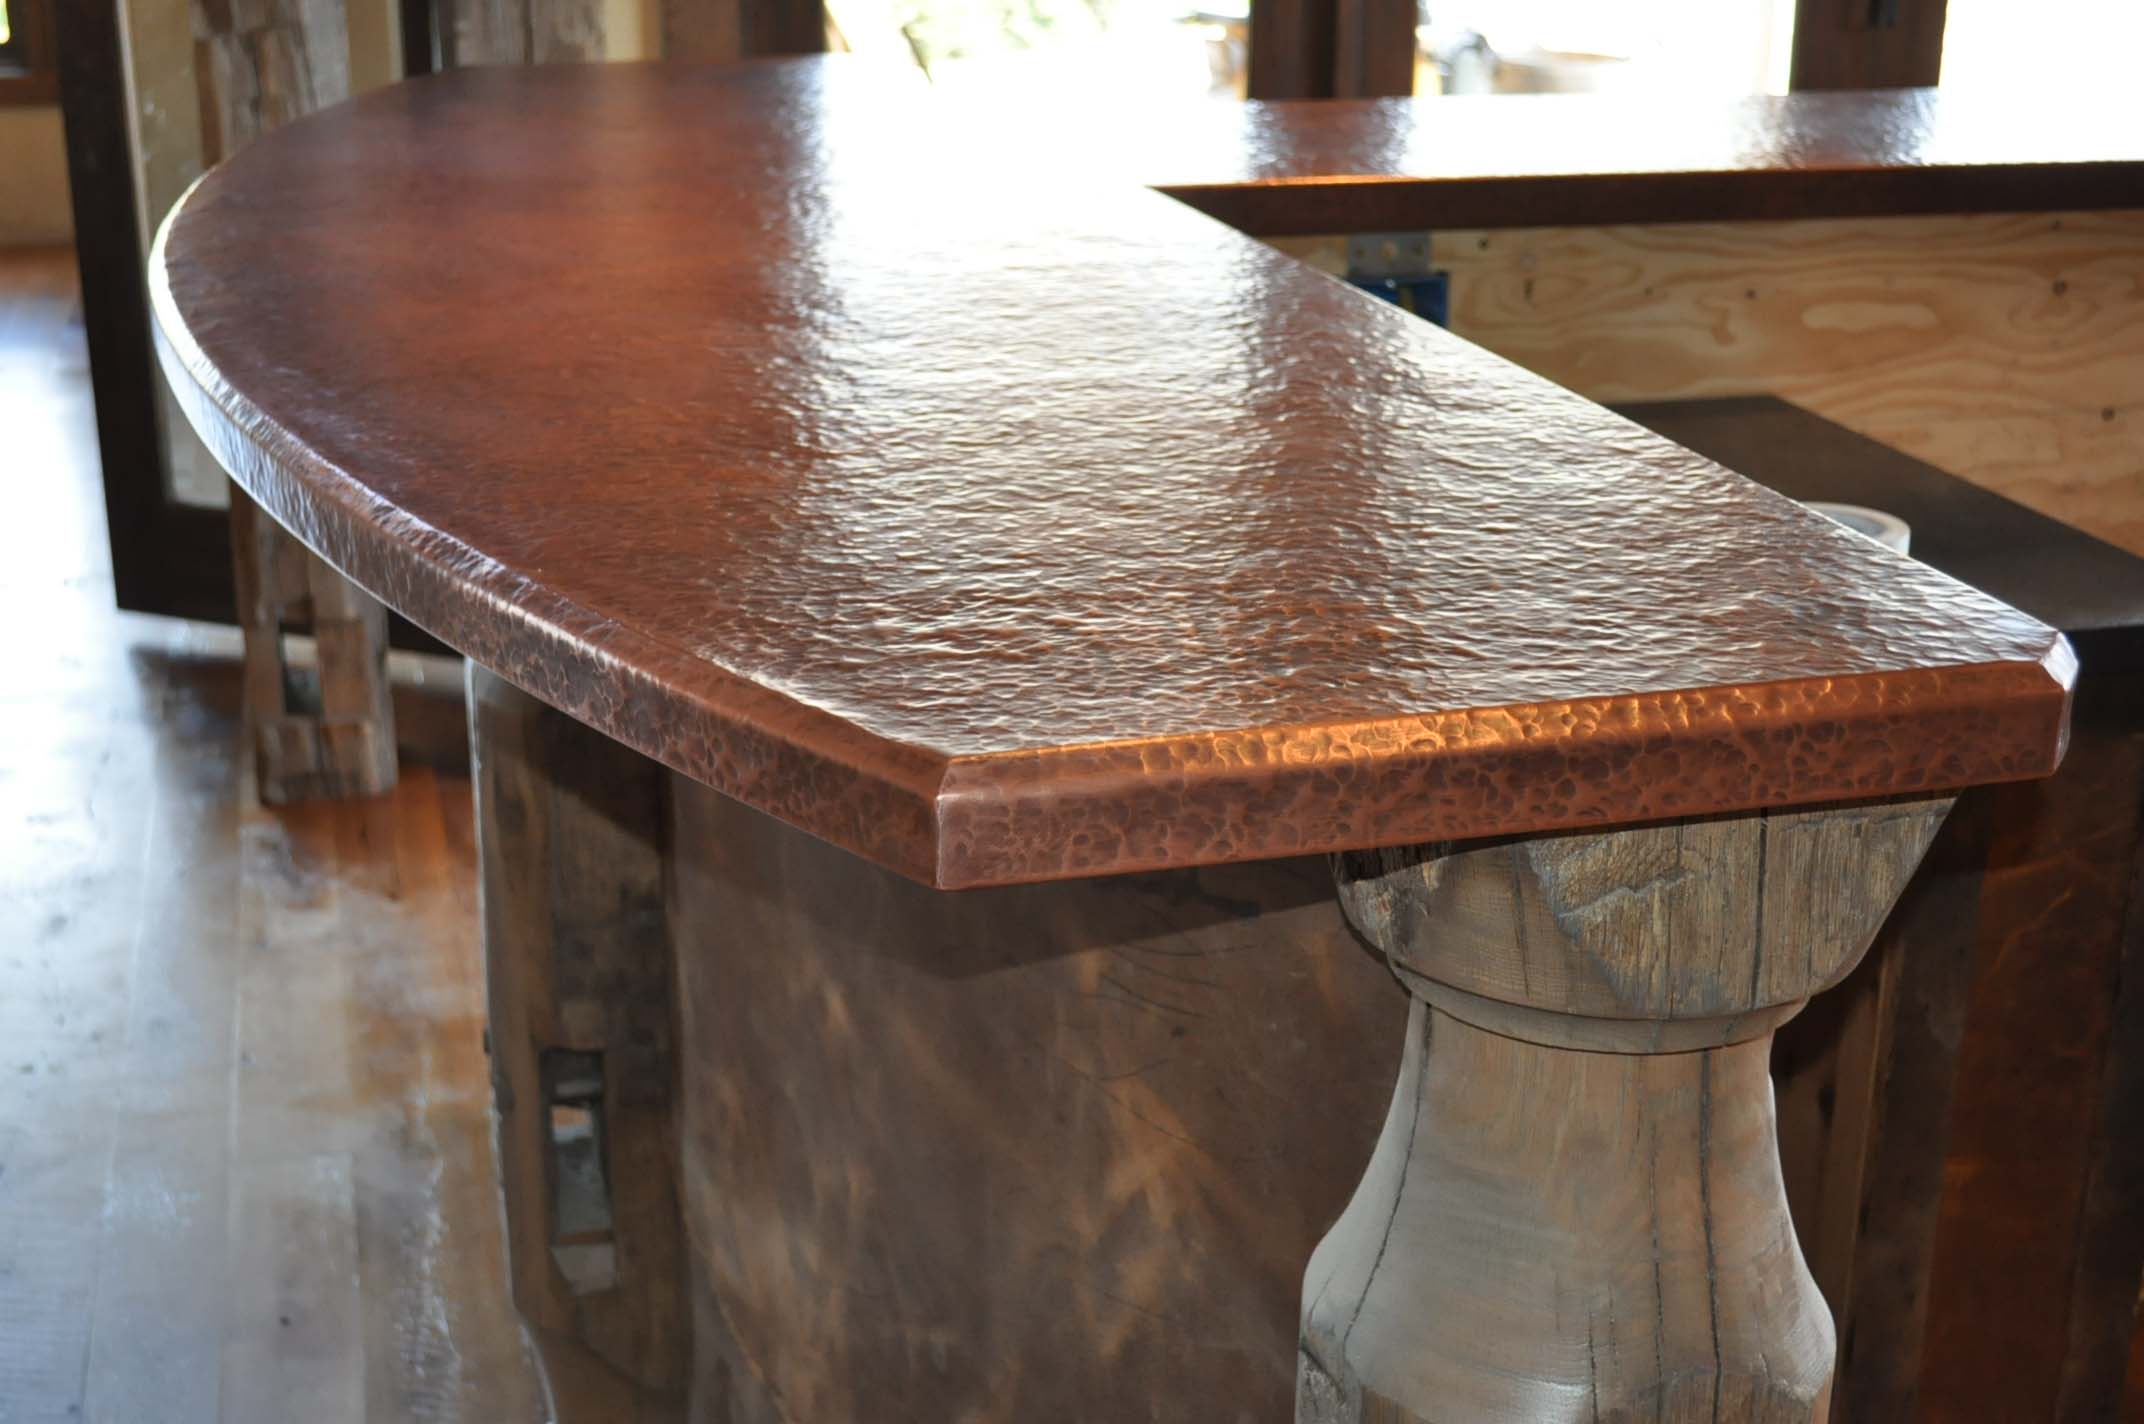 Cool copper countertop by Mountain Copper Creations http://www.mtncoppercreations.com/